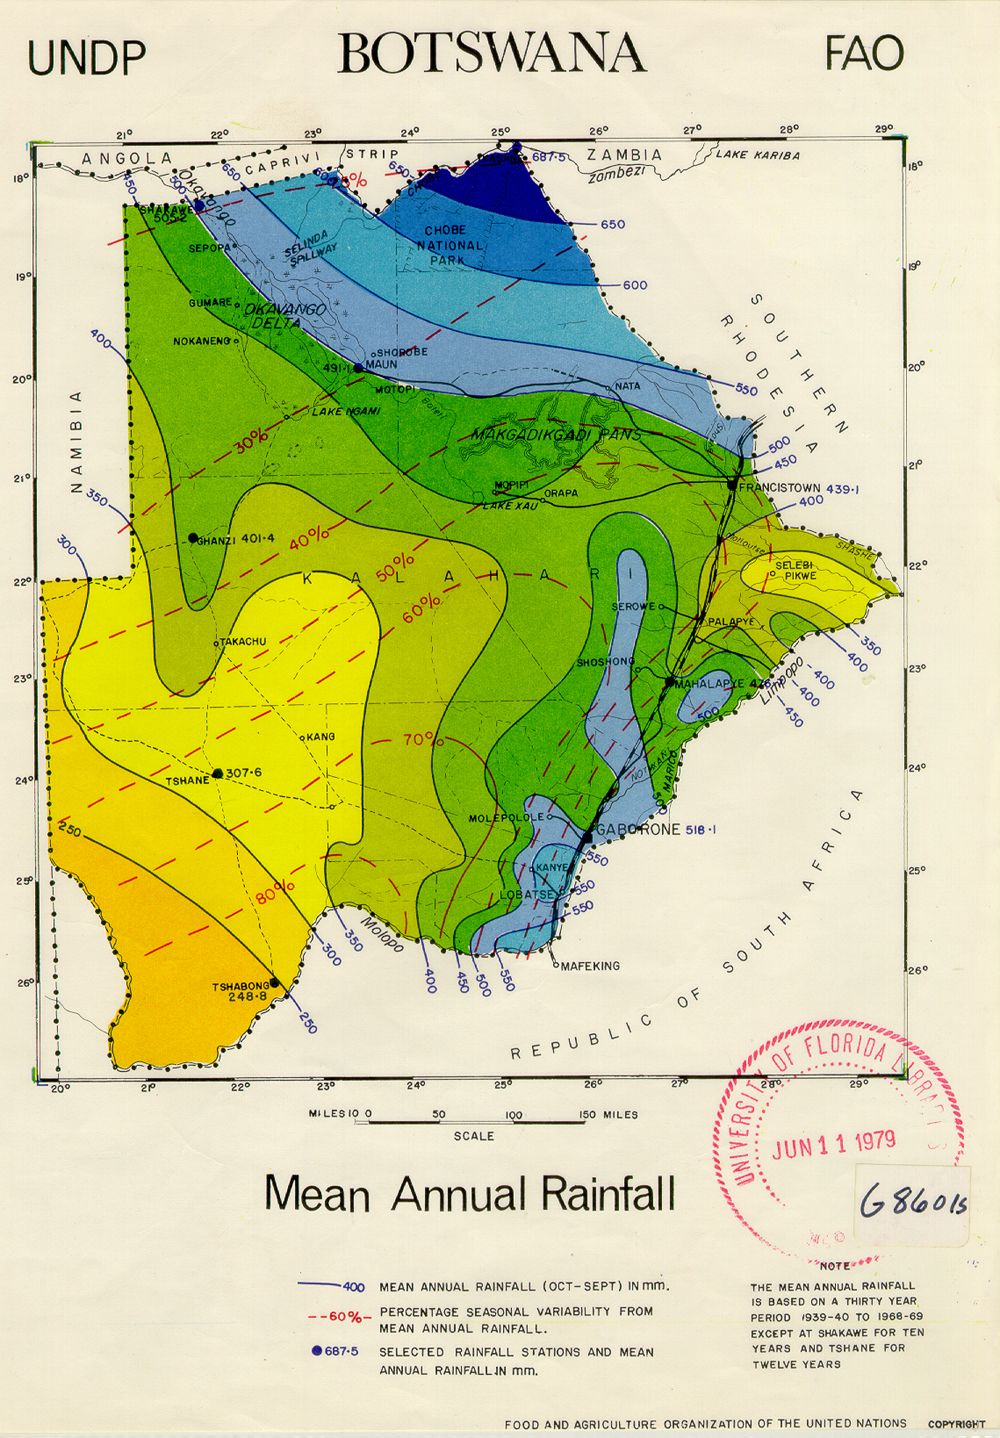 Botswana Rainfall Map | Botswana, Africa | Pinterest | Africa and Park